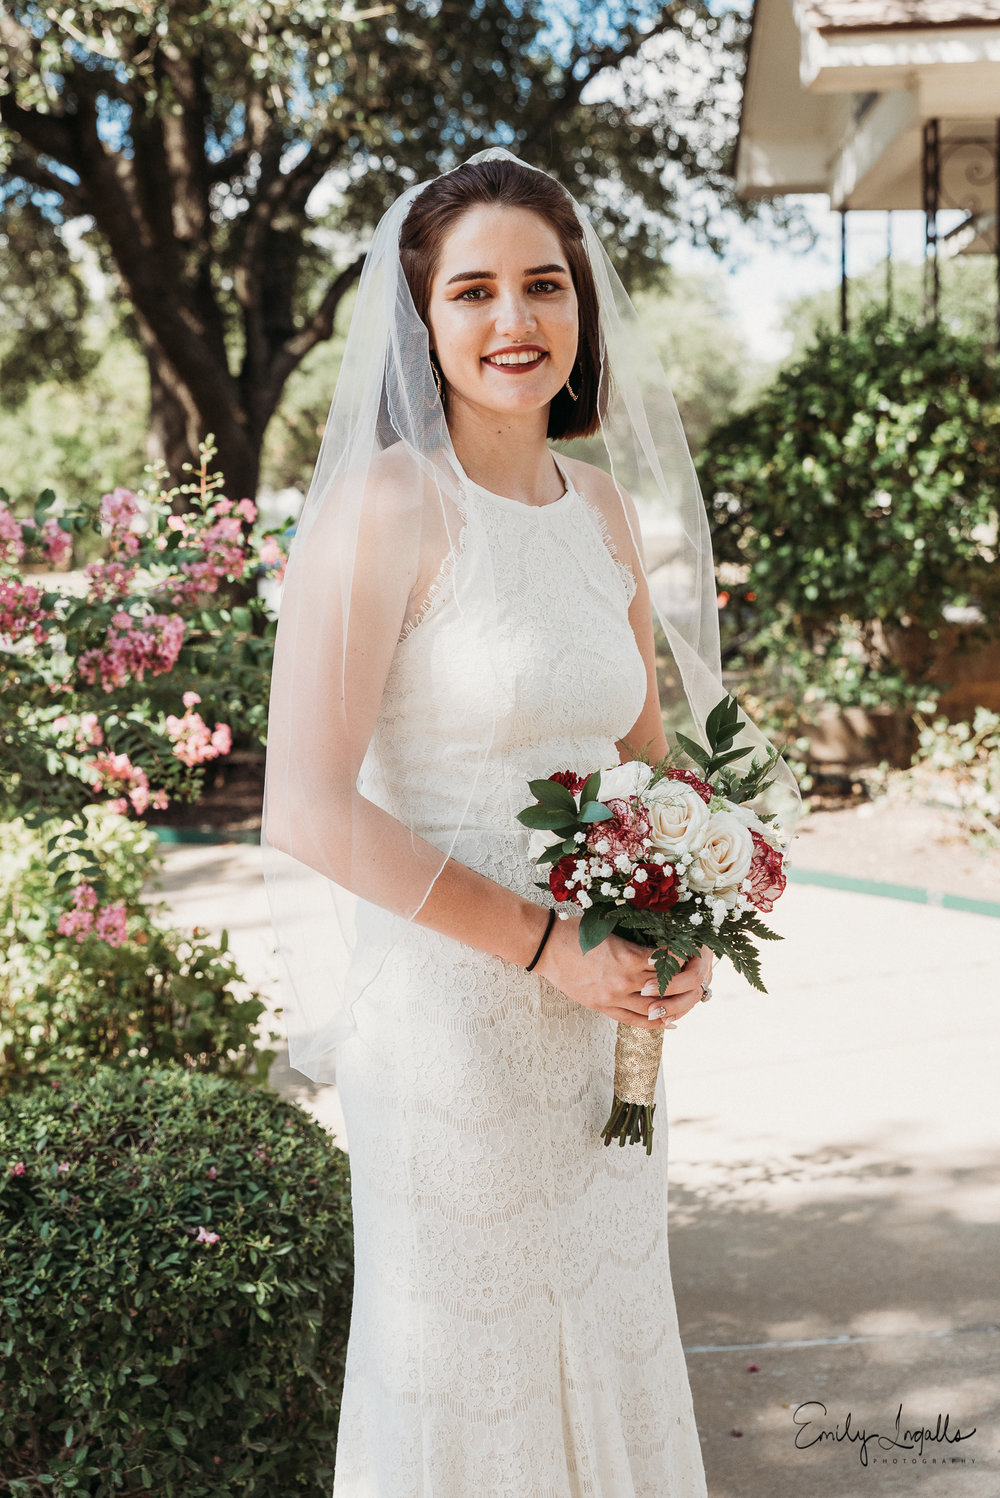 Wedding Photographer_Round Rock Photographer_Emily Ingalls Photography_Austin Photographer_Pflugerville Photographer_Georgetown Photographer-2.jpg